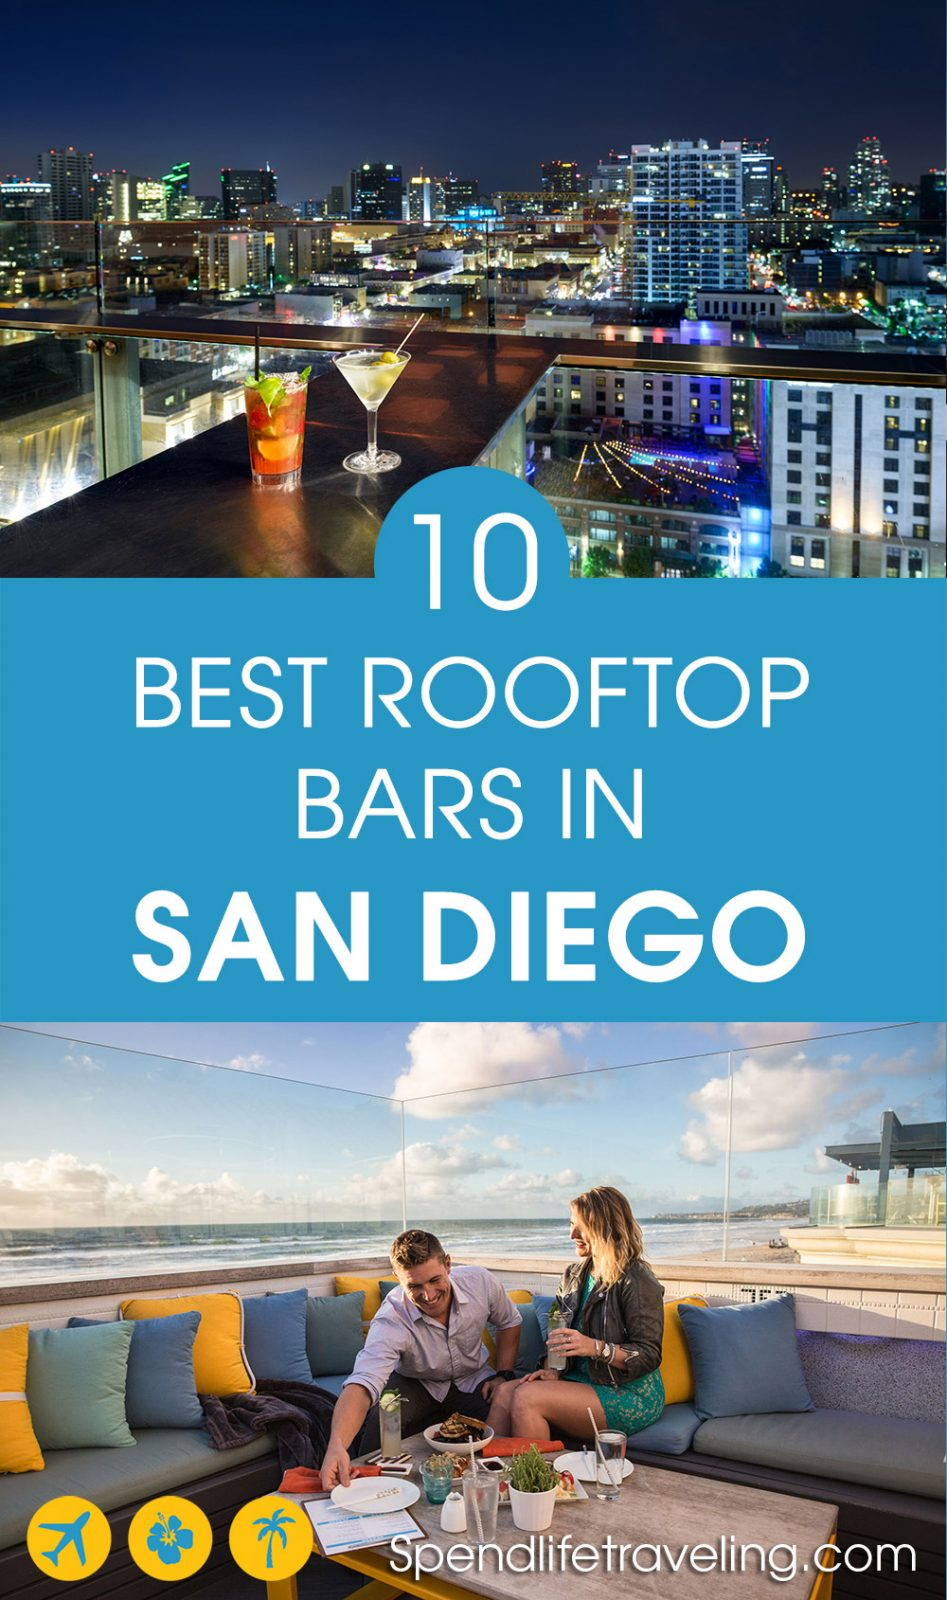 A list and review of 10 of the best rooftop bars in San Diego, California. #SanDiego #rooftopbar #bestbars #visitCalifornia